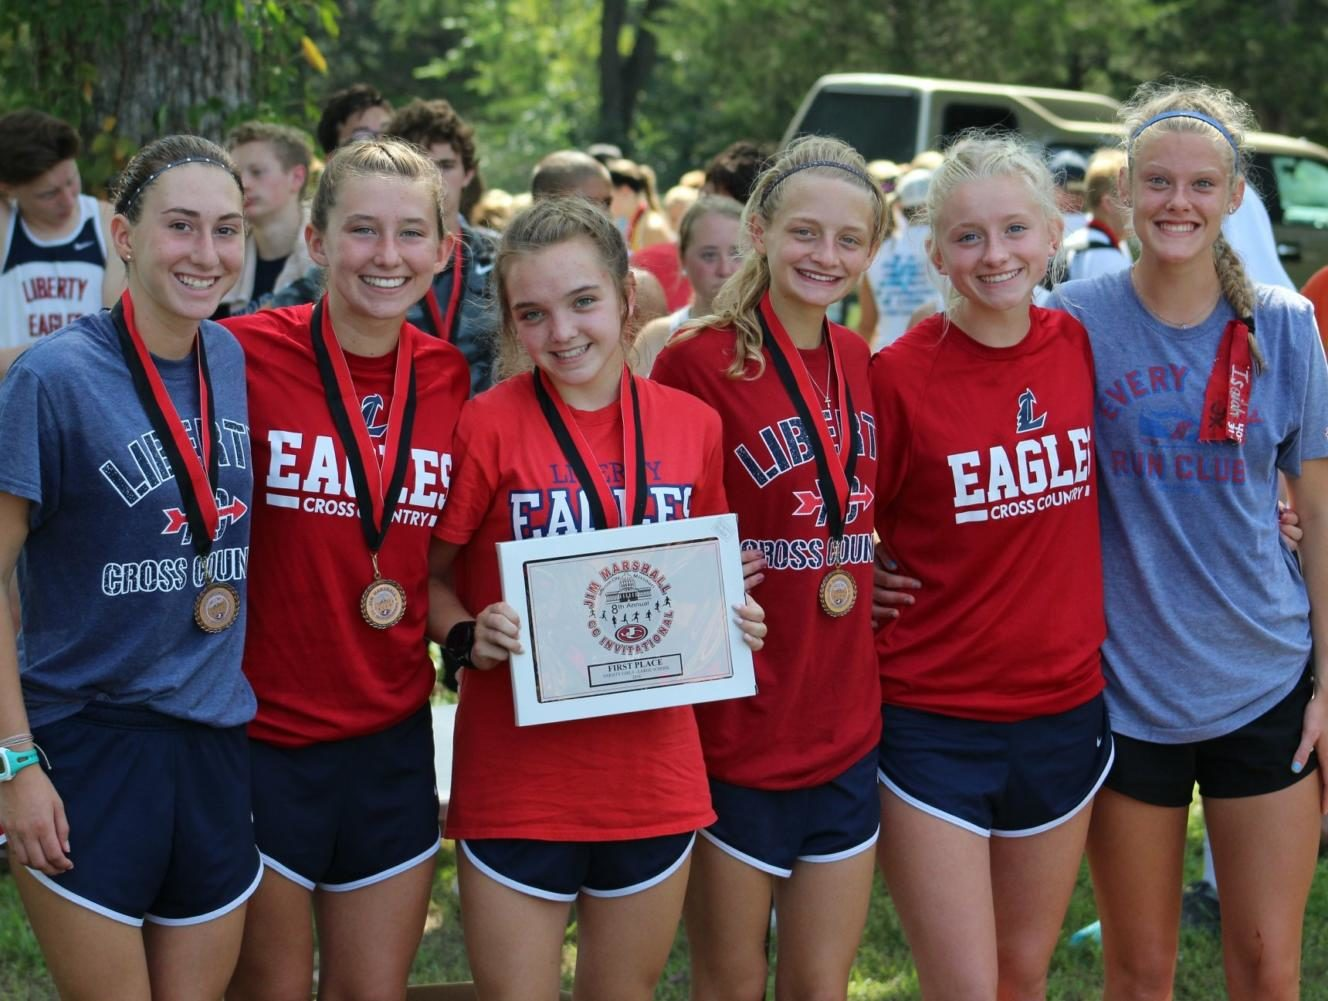 Cross country's varsity girls celebrate their first place victory on their first meet of the season.